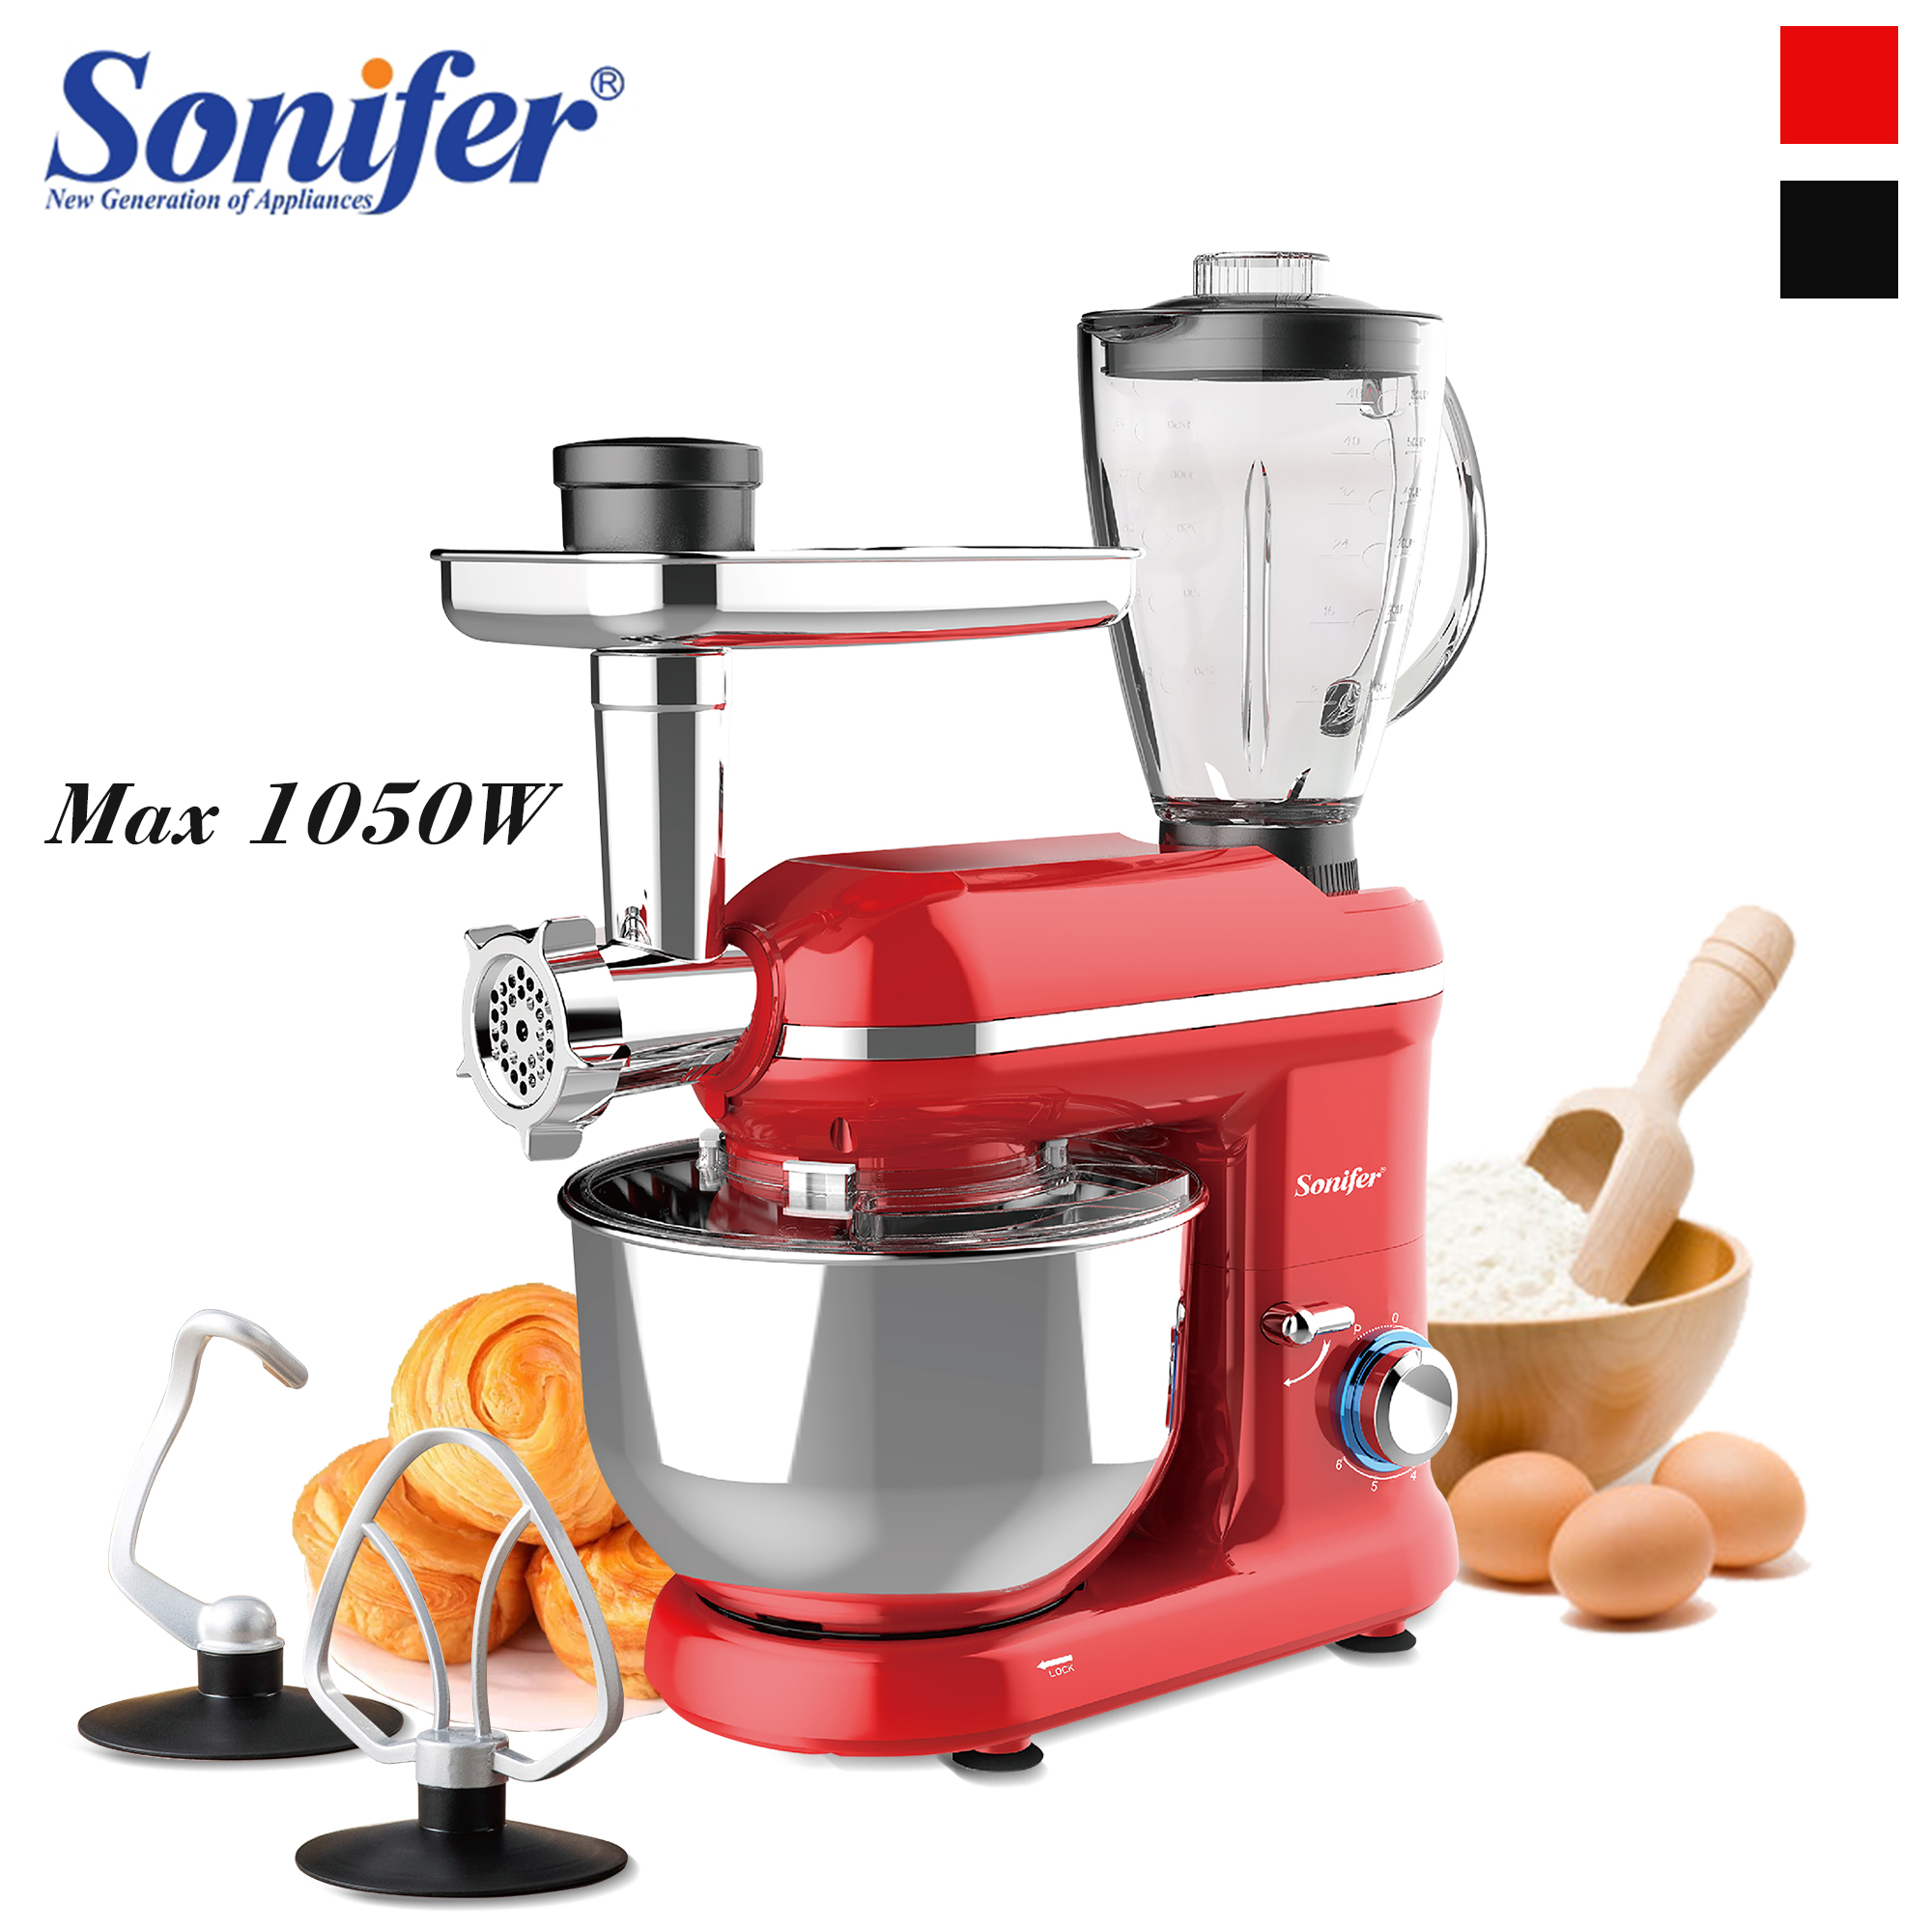 1050W 5.5L Kitchen Food Stand Mixer 6-Speed 3in1 Household Kitchen Meat Grinder Blender Juicer Cake Dough Bread Mixer Sonifer